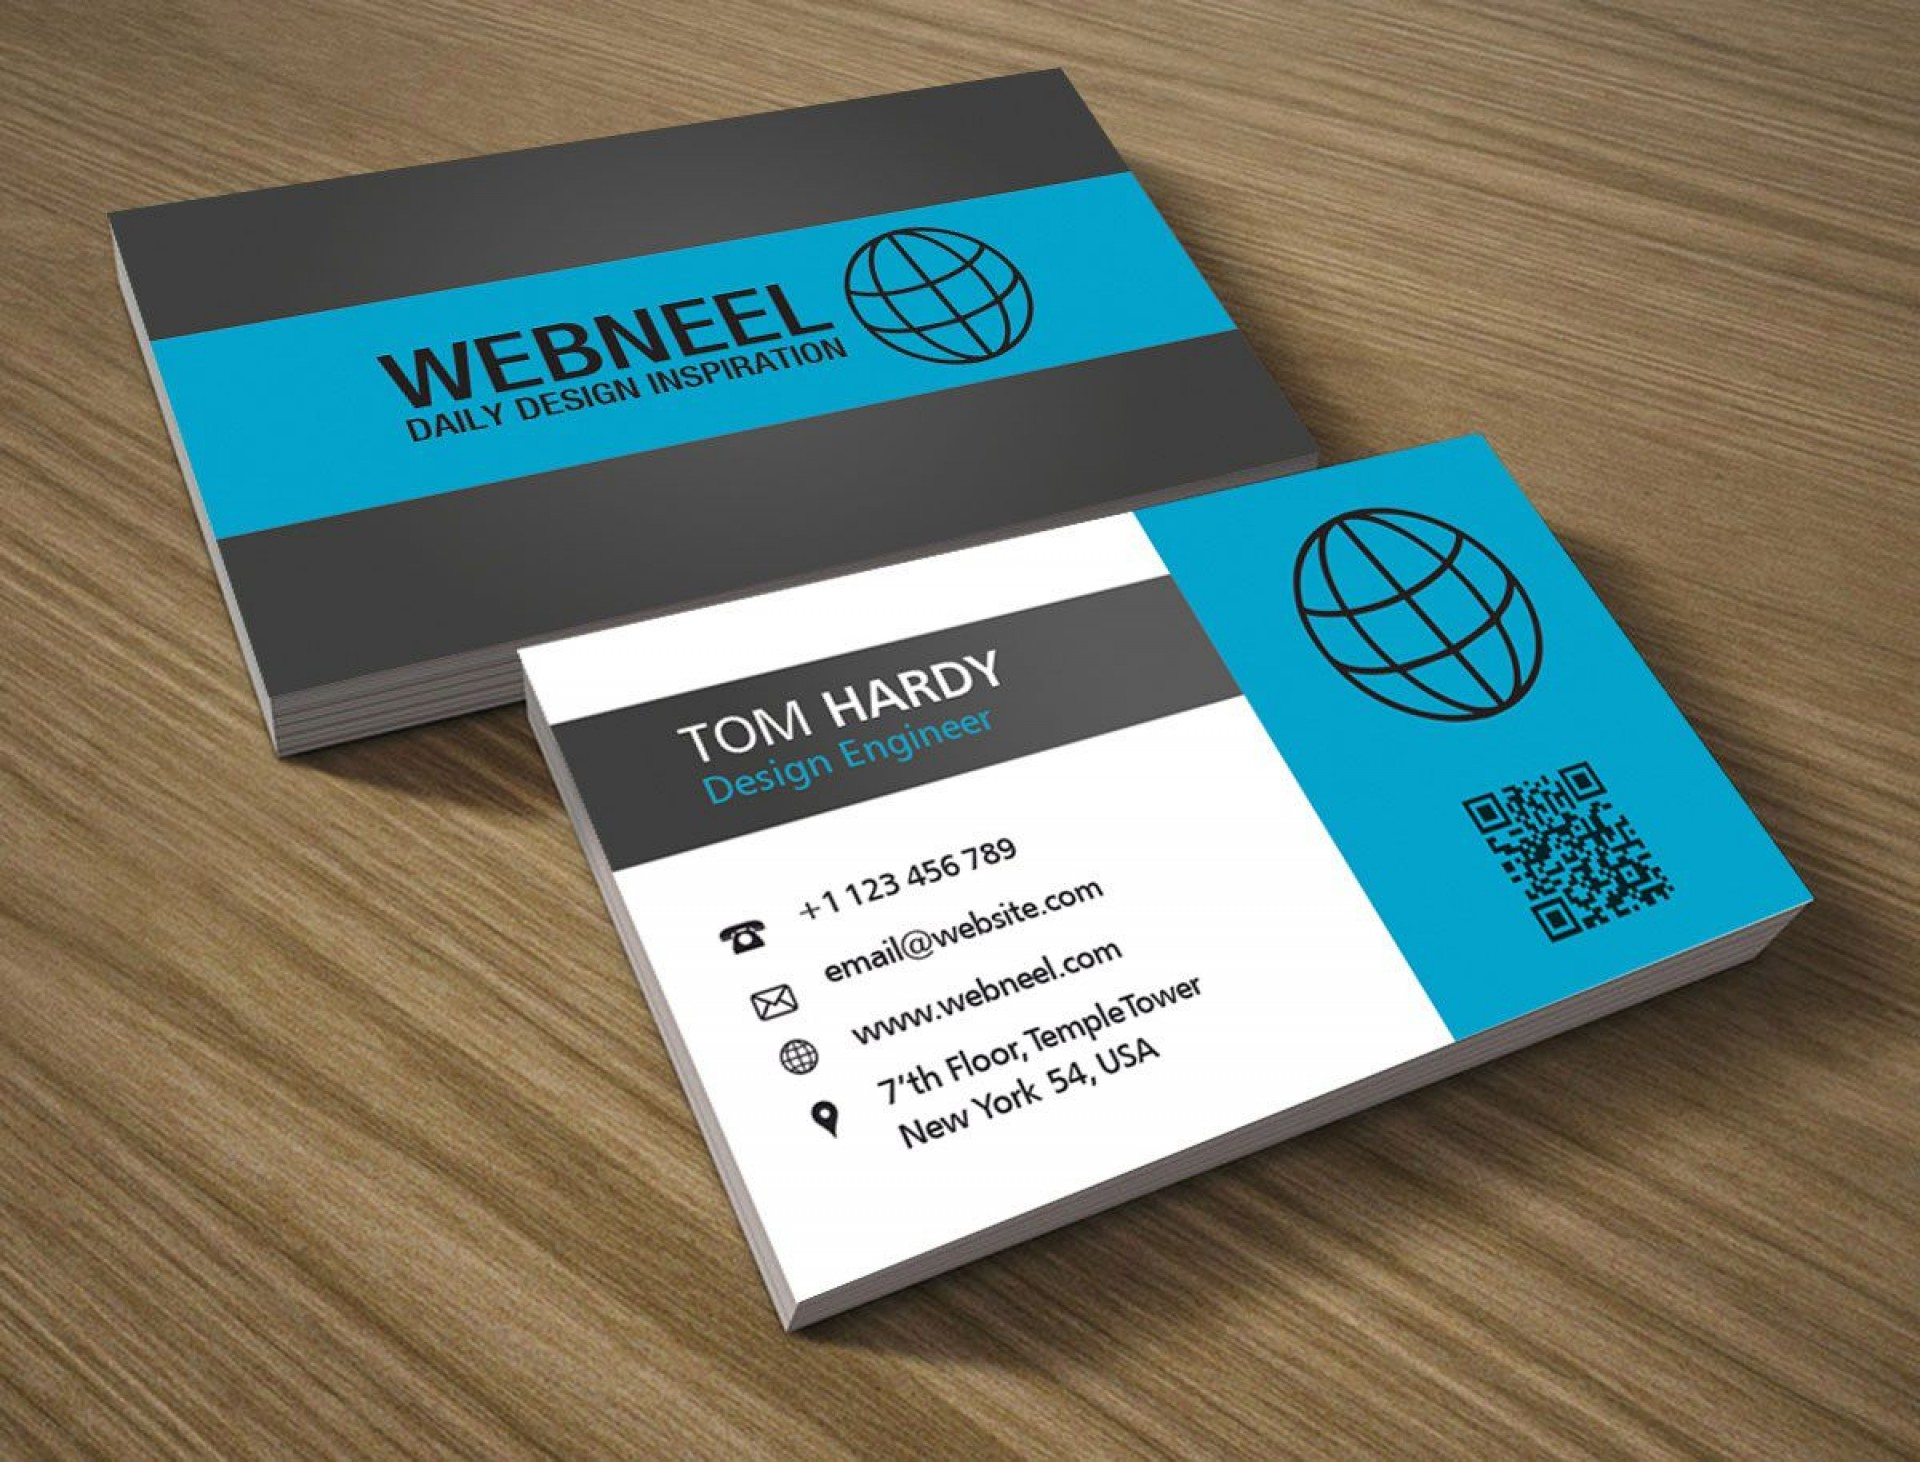 001 Unbelievable Simple Busines Card Template Free Download High Definition  Visiting Design Psd File Minimalist1920